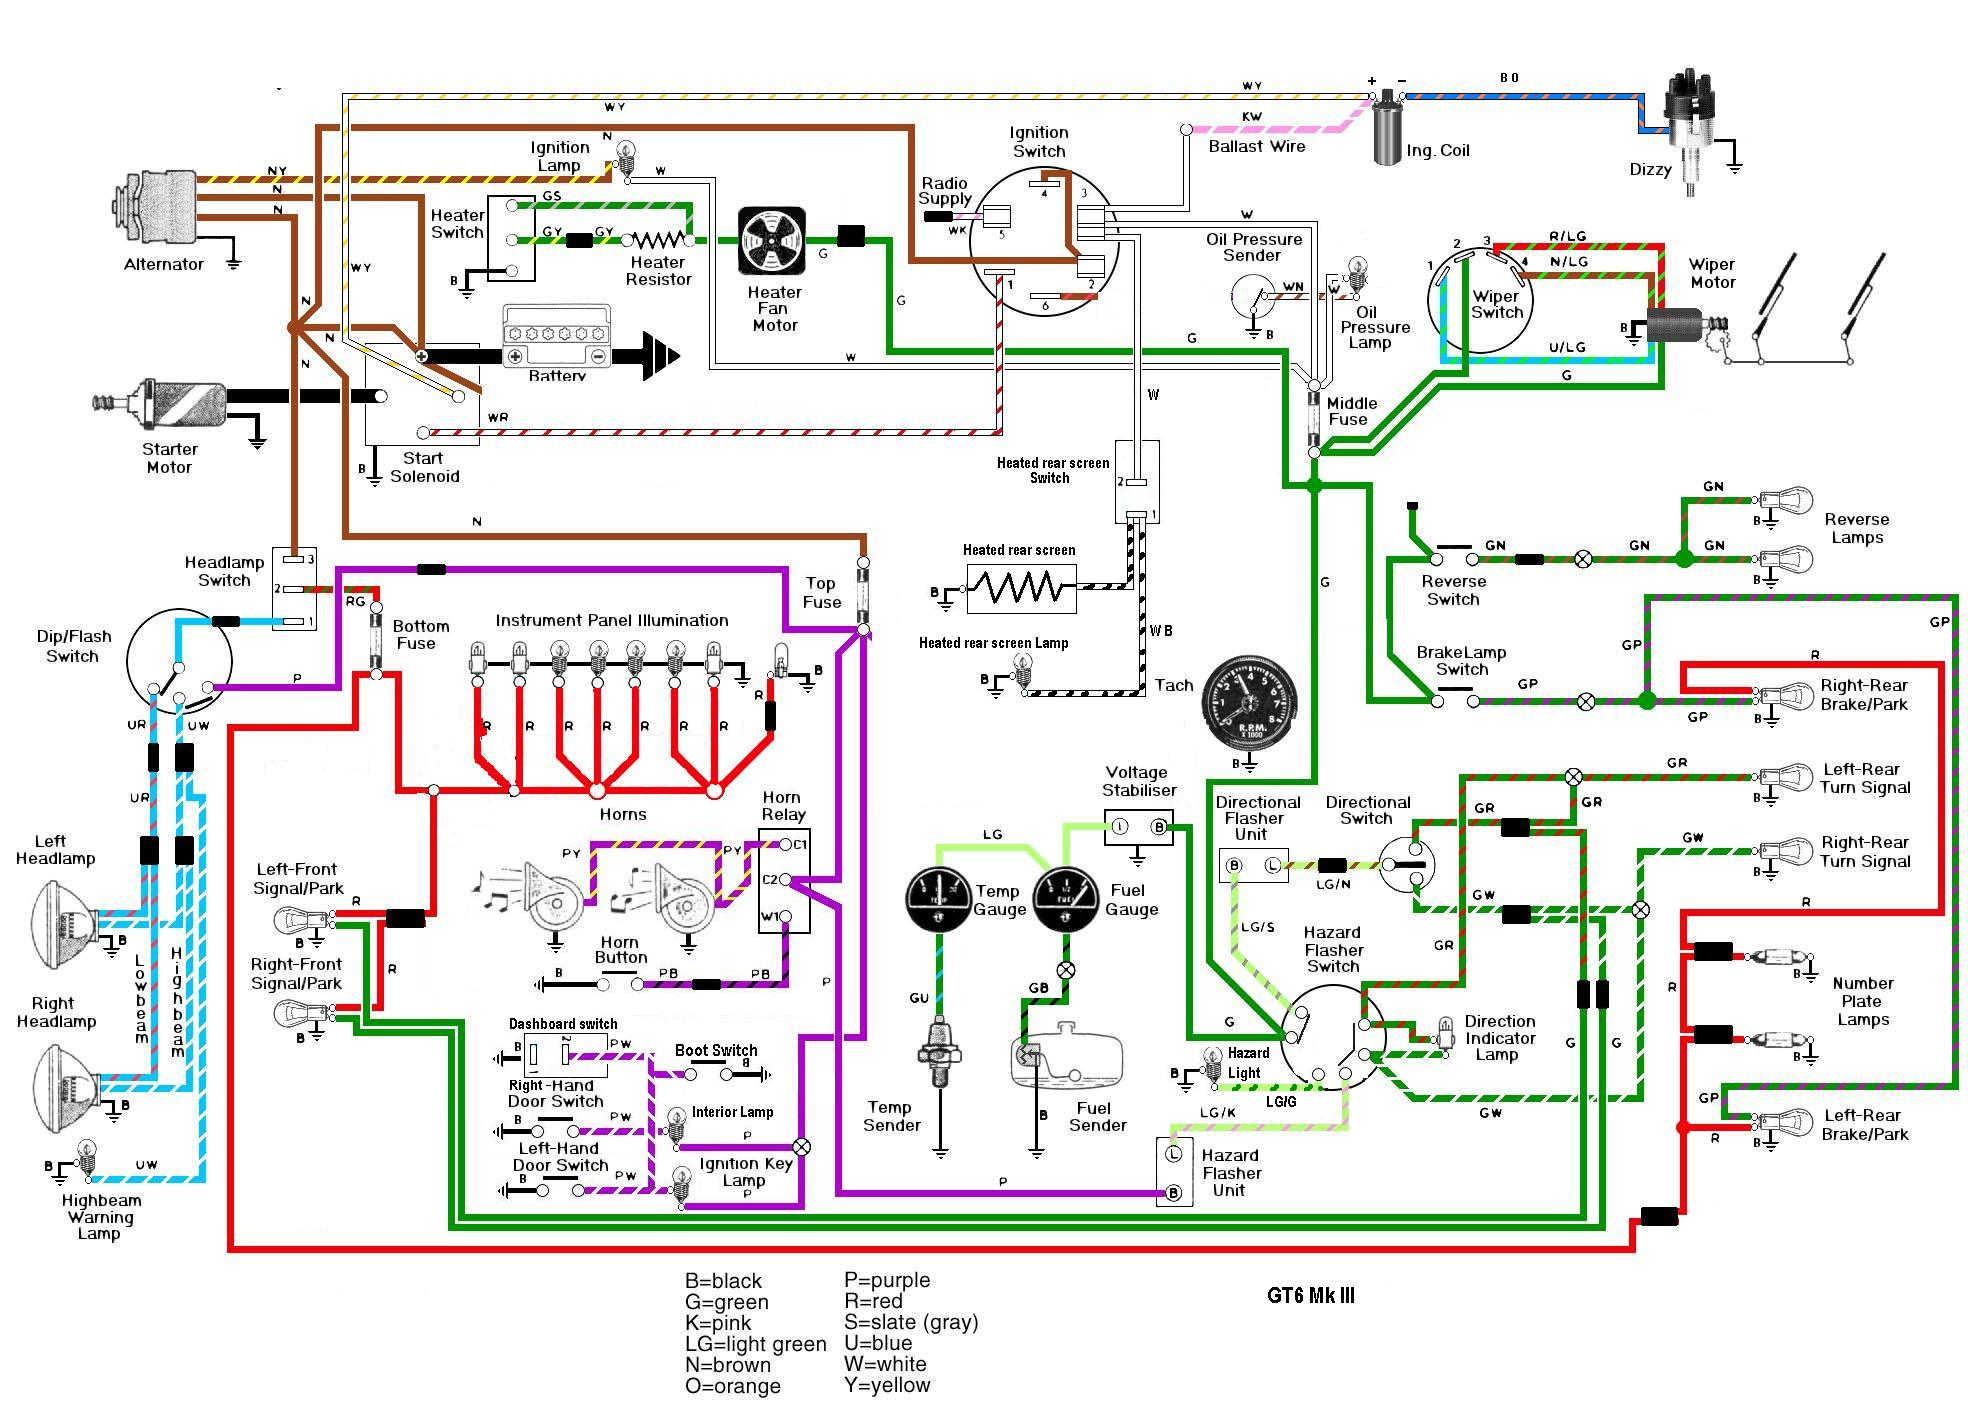 gt6 good wiring diagram mygt6 com triumph gt6 mk3 wiring diagram